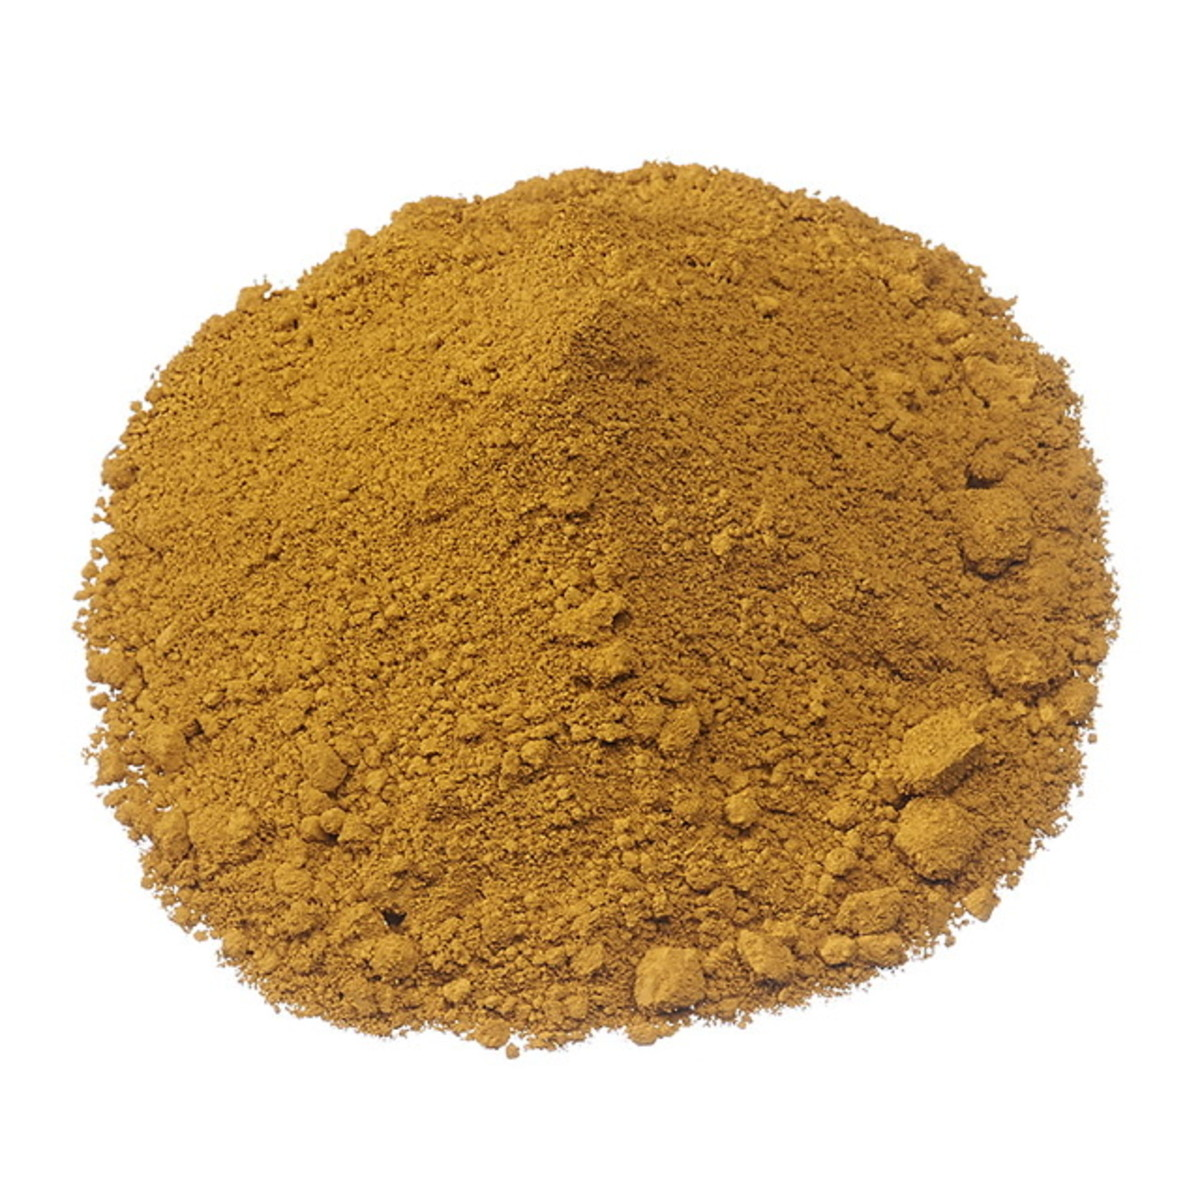 Inorganic Yellow Pigments